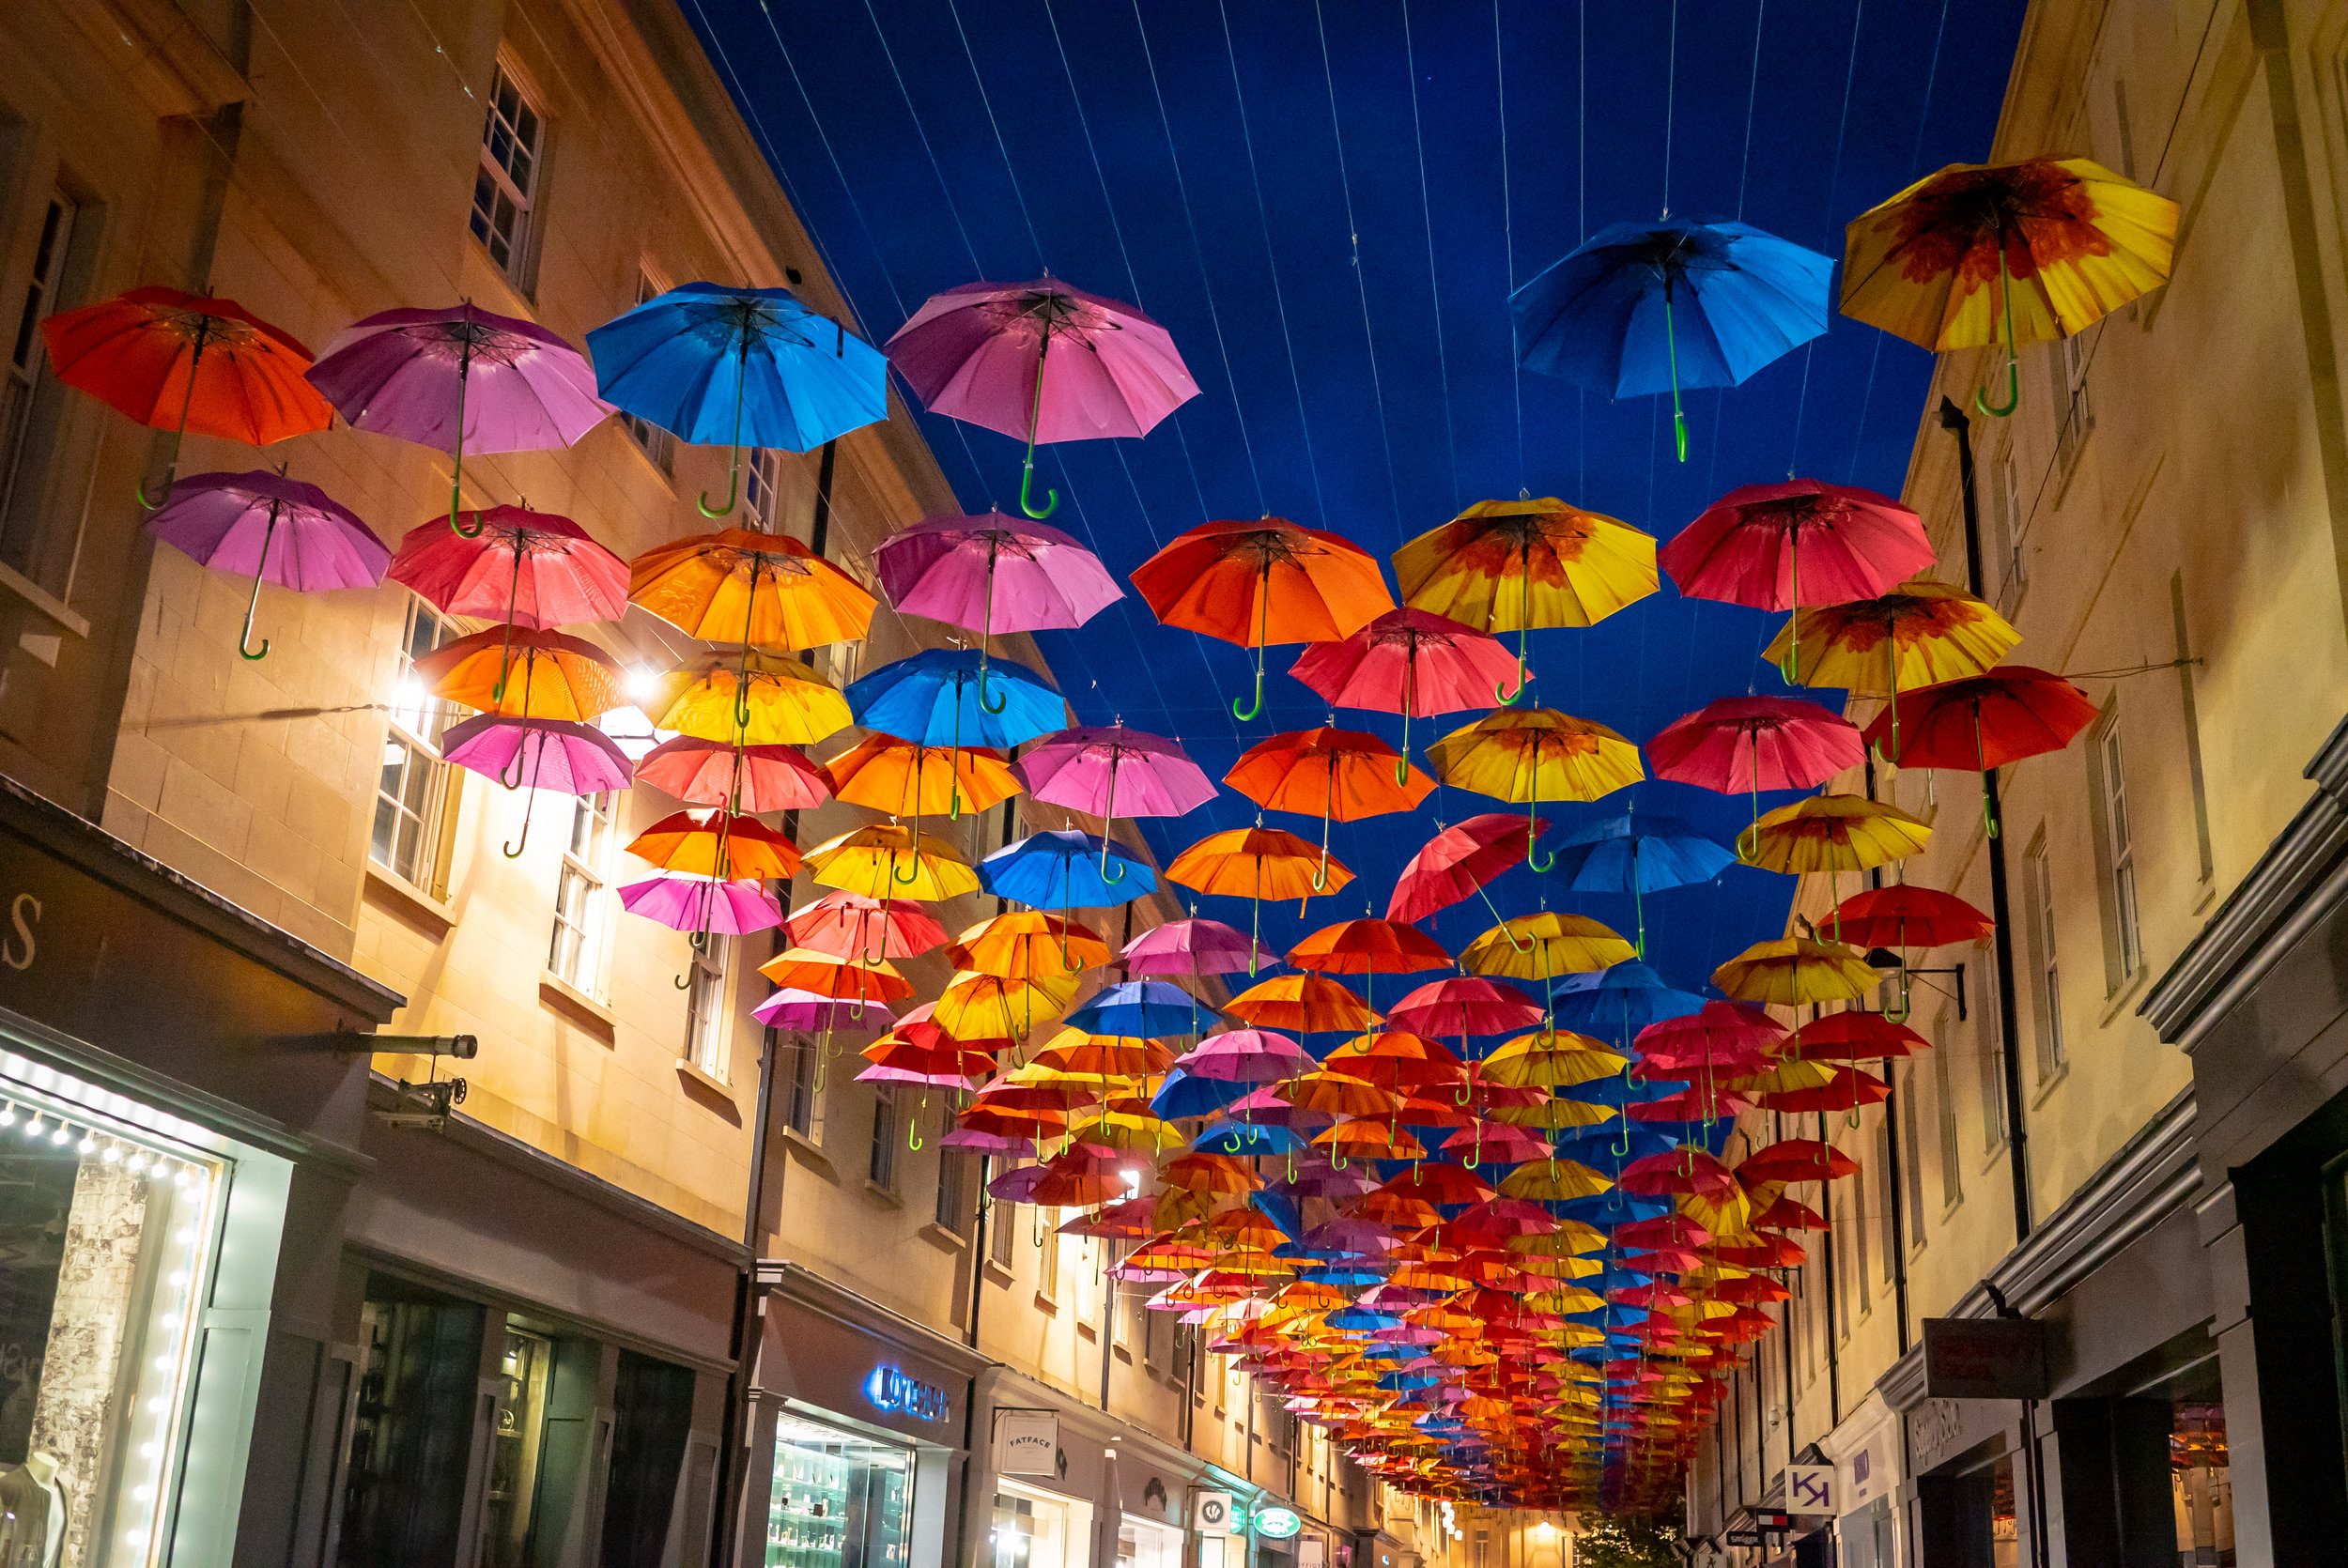 umbrellas-floating-over-the-street